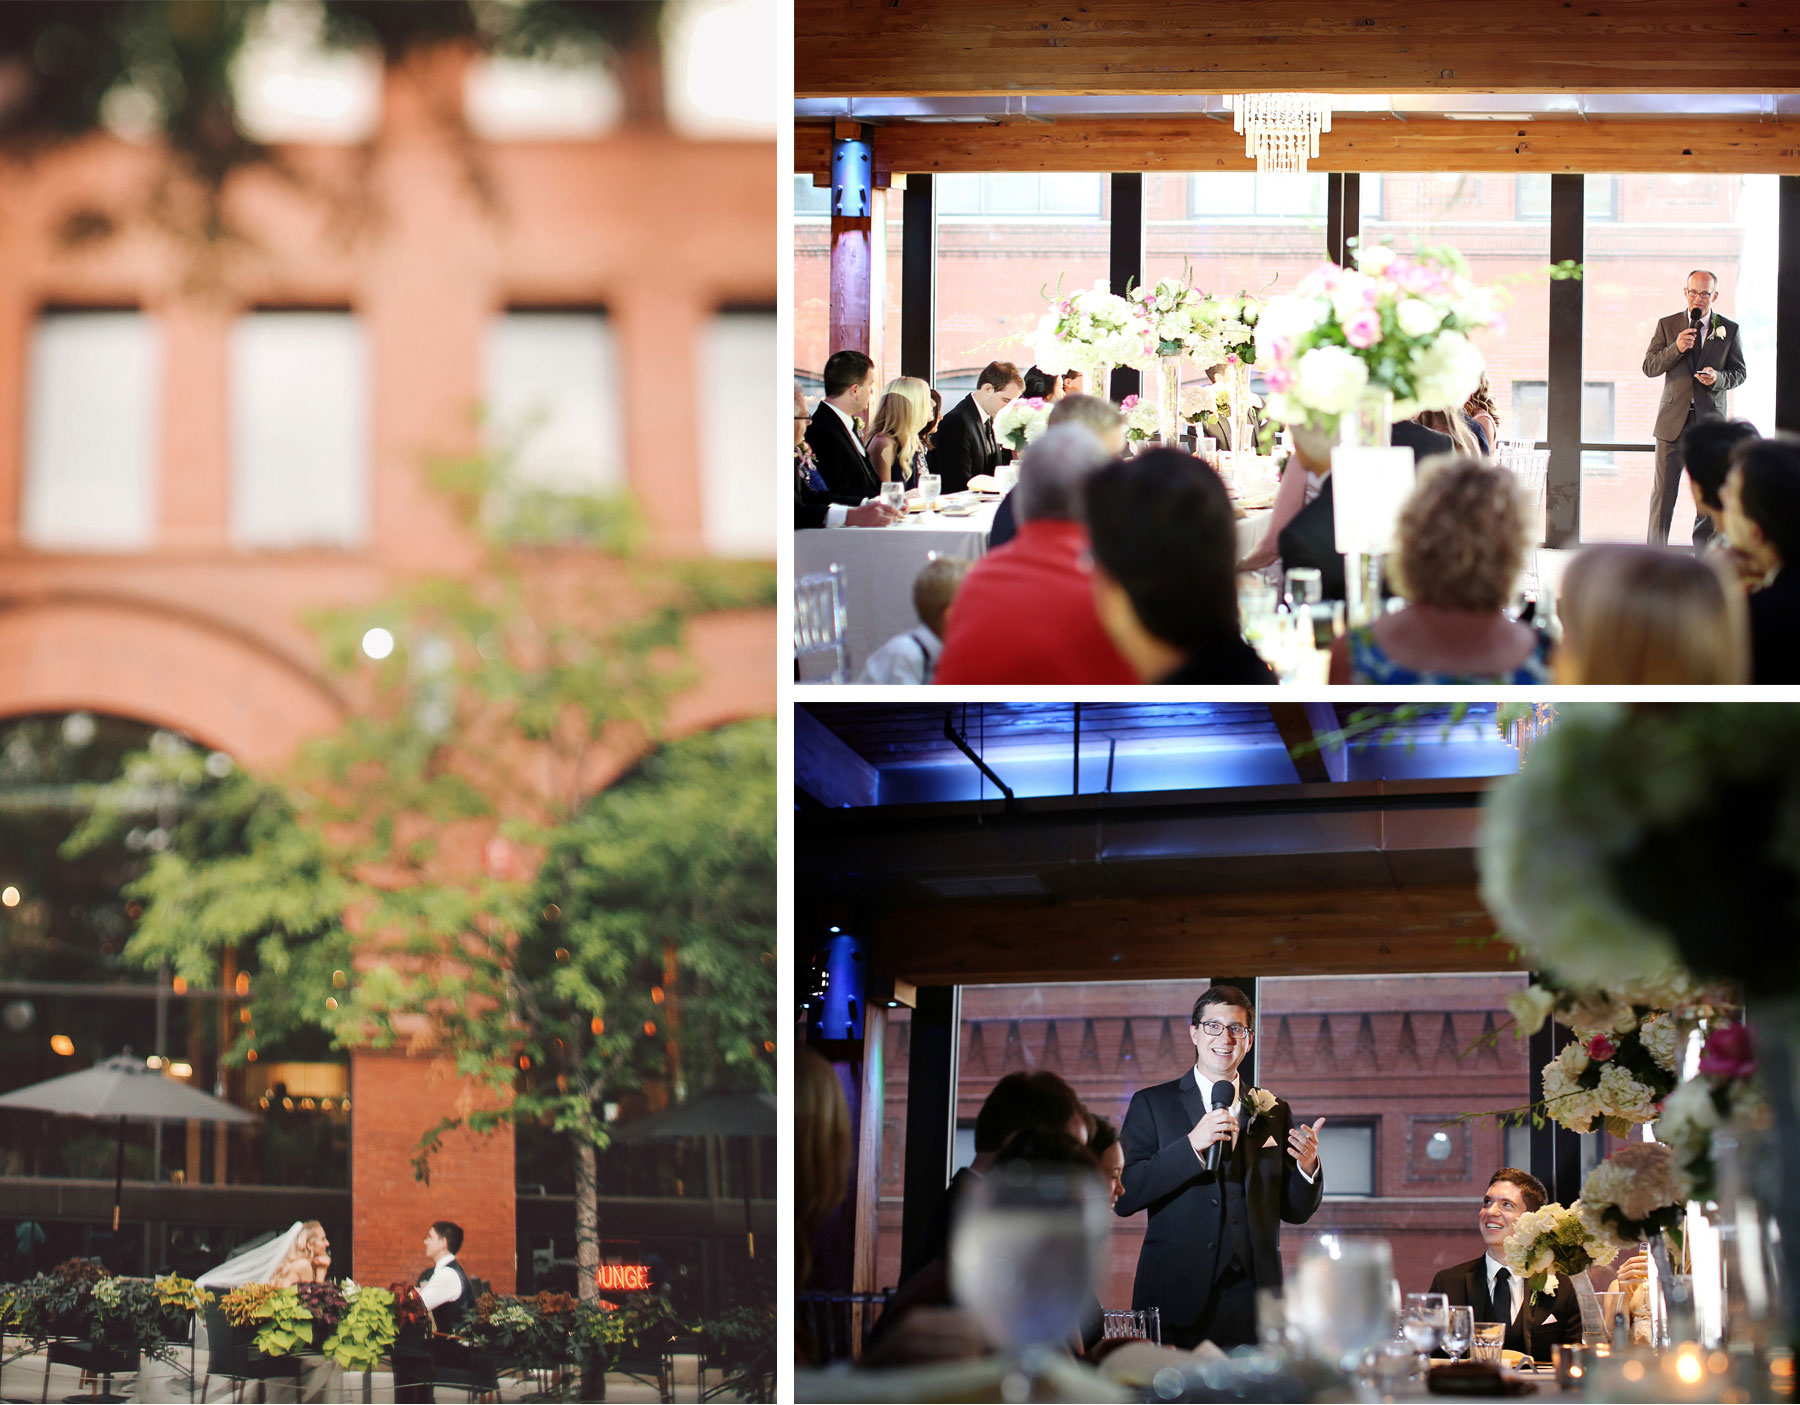 22-Saint-Paul-Minnesota-Wedding-Photographer-by-Andrew-Vick-Photography-Summer-Abulae-Bride-Groom-Reception-Speaches-Laura-and-Tim.jpg